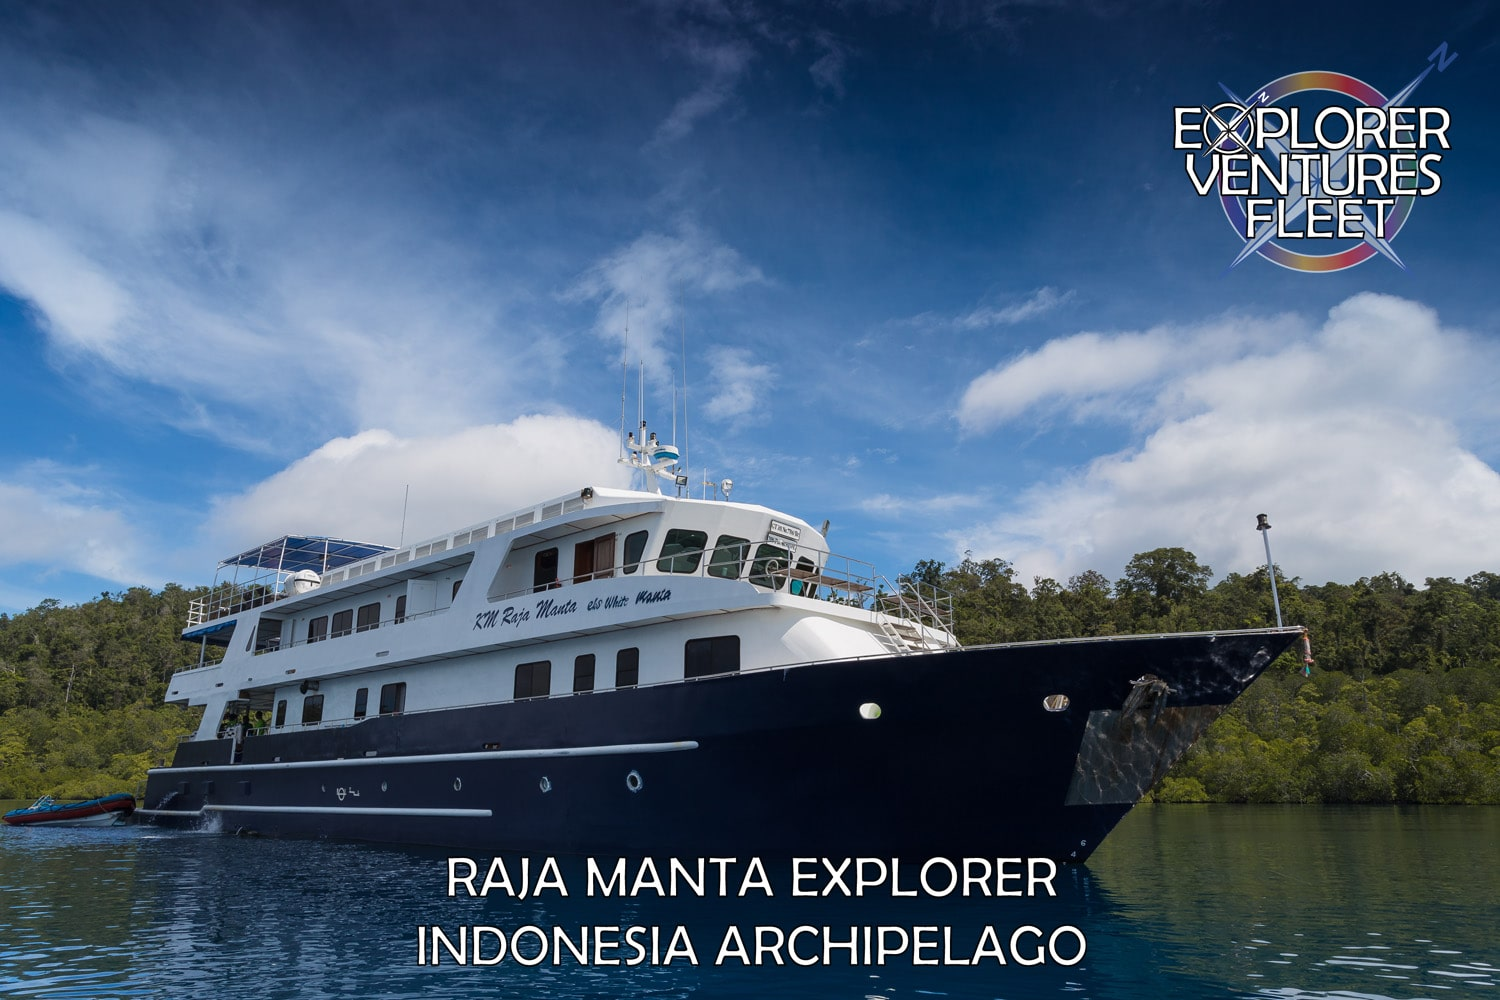 The M/V Raja Manta Explorer will tour the Indonesian Archipelago.